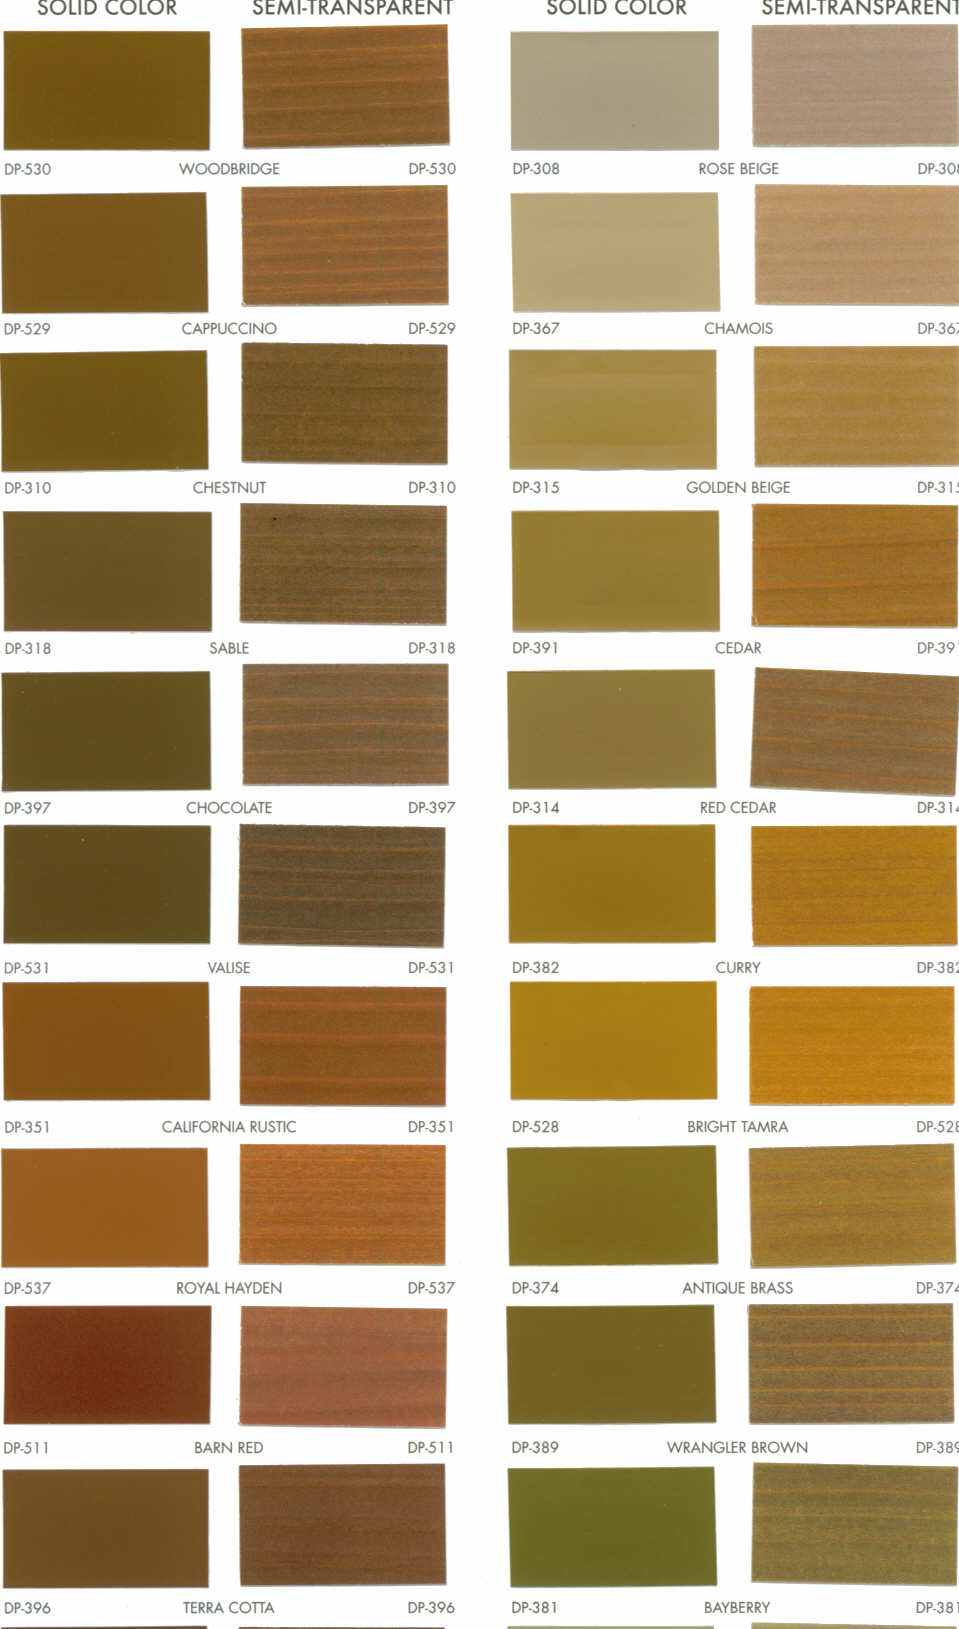 Behr Semi Transparent Deck Stain Submited Images